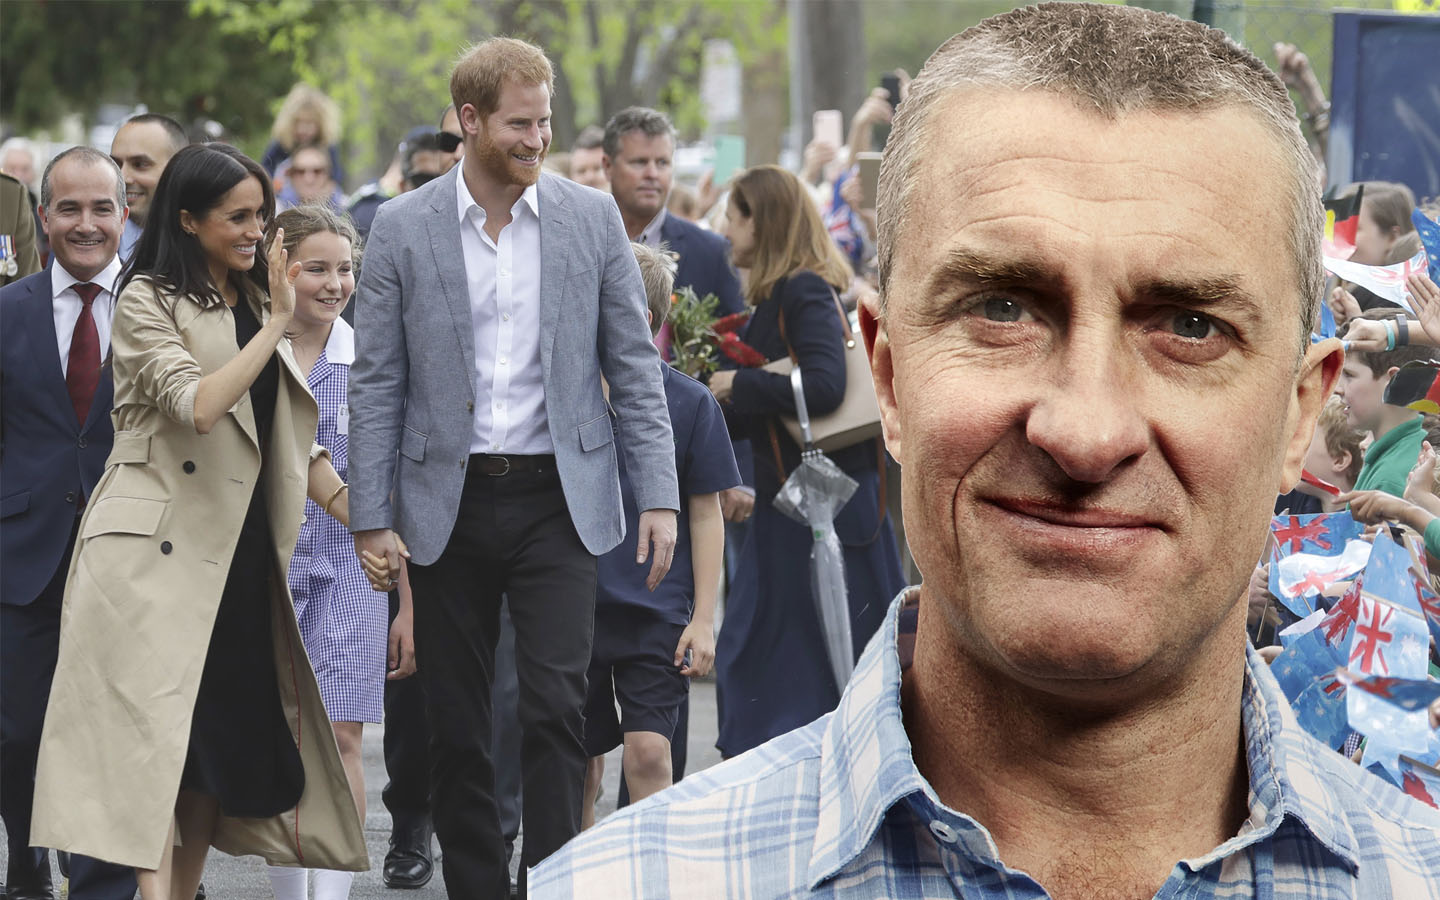 Article image for 'We love having them in our lives': Tom endorses Royal family after day out in Melbourne